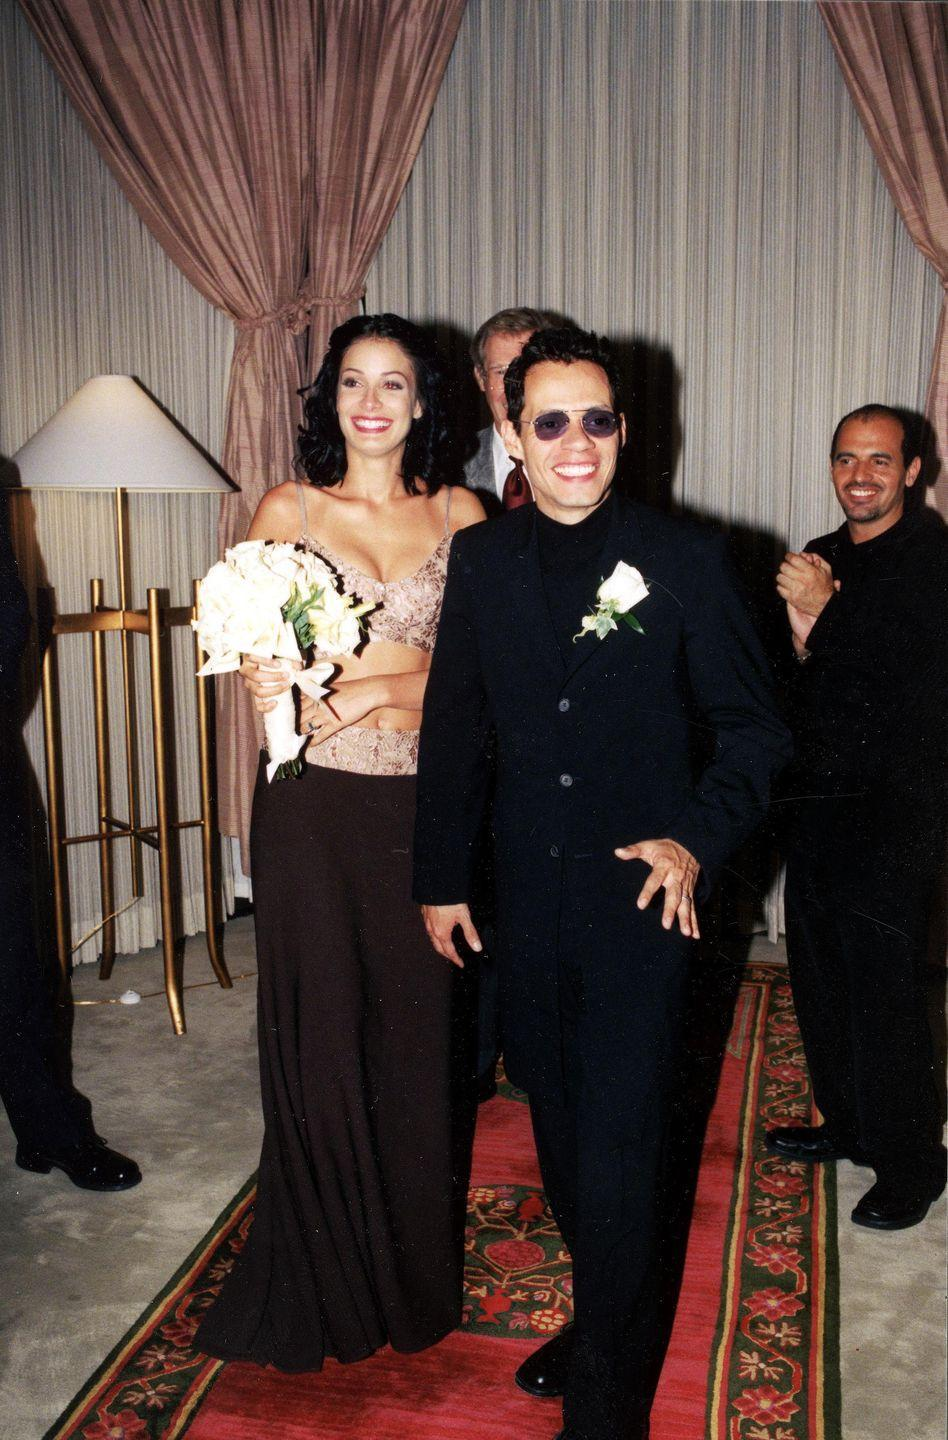 "<p>While the Latin singer and the former Miss Universe first got married in May 2000 at a super-secret Las Vegas ceremony, the vow renewals were a grander affair two years later. The couple and their 200 guests <a href=""https://www.forbes.com/2007/07/12/celebrity-media-weddings-biz-media-cz_lg_ts_0712celebweddings_slide.html#529528202f0b"" rel=""nofollow noopener"" target=""_blank"" data-ylk=""slk:celebrated with a ceremony"" class=""link rapid-noclick-resp"">celebrated with a ceremony</a> in Puerto Rico that reportedly cost $500,000. Anthony and Torres divorced in 2004. </p>"